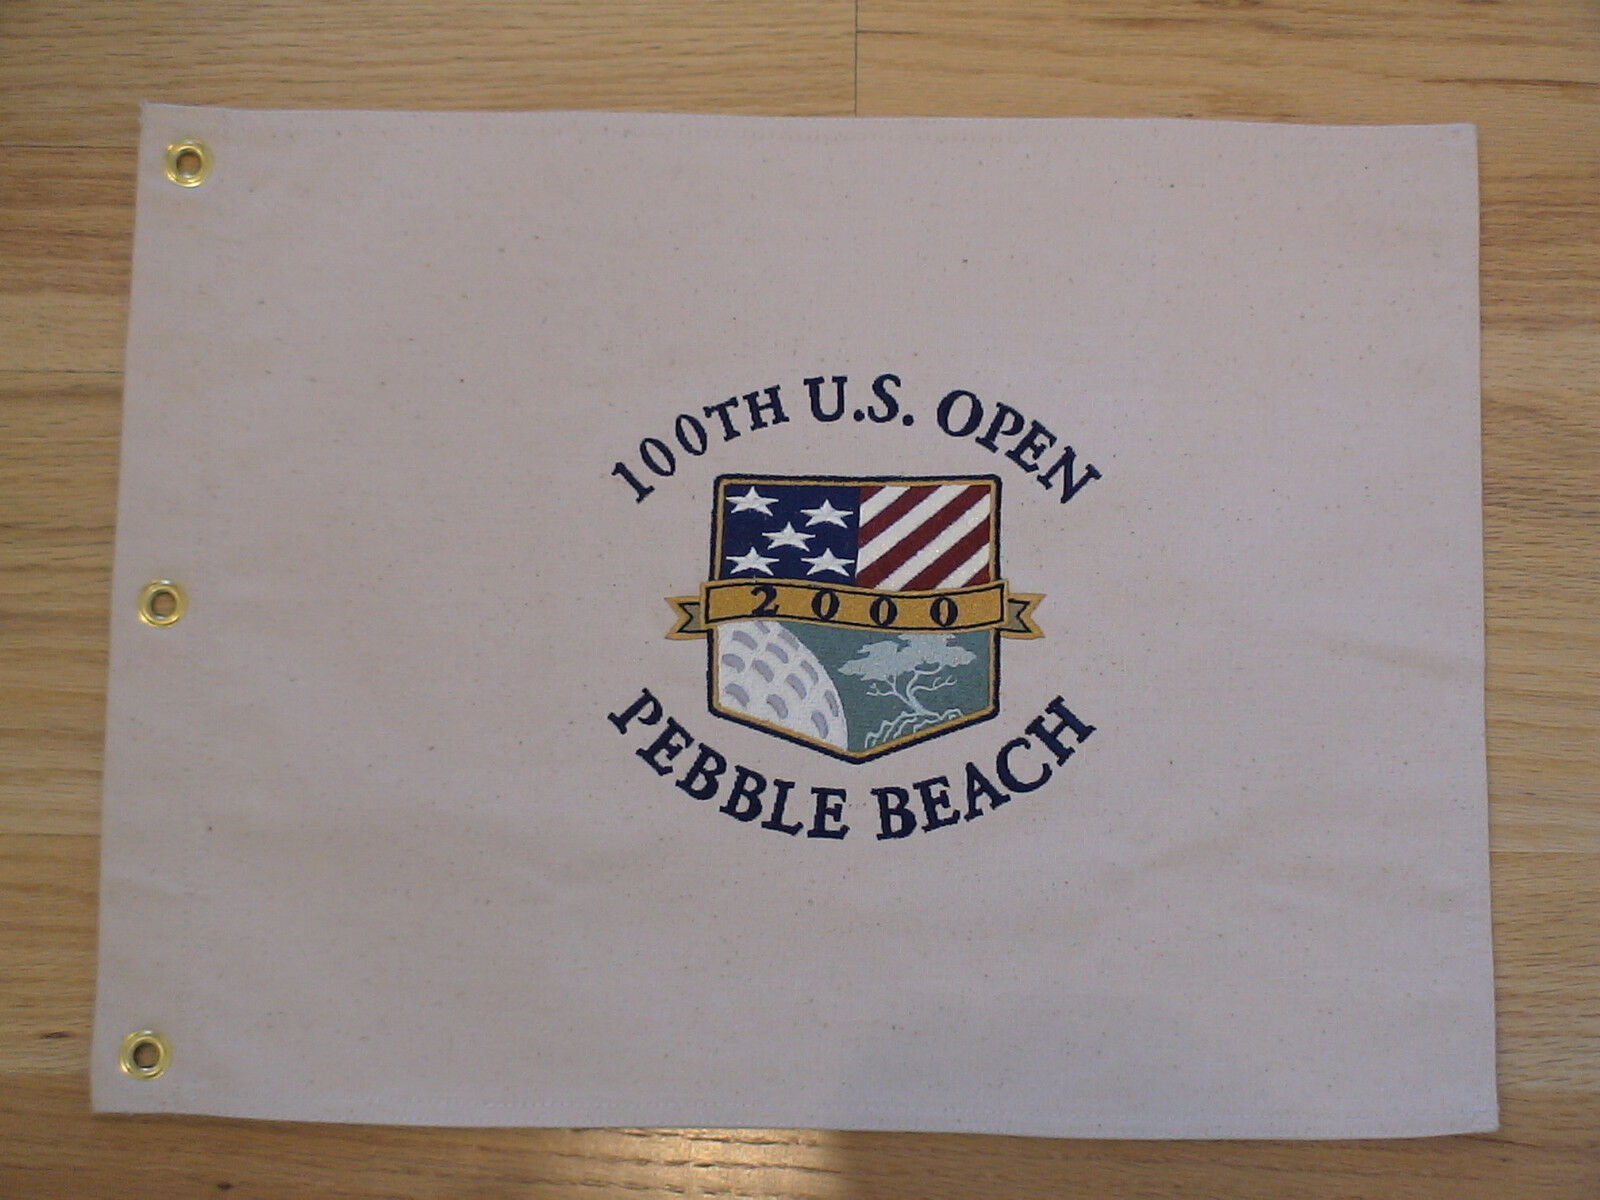 2000 U.S. US OPEN EMBROIDERED CANVAS PEBBLE BEACH FLAG TIGER WOODS